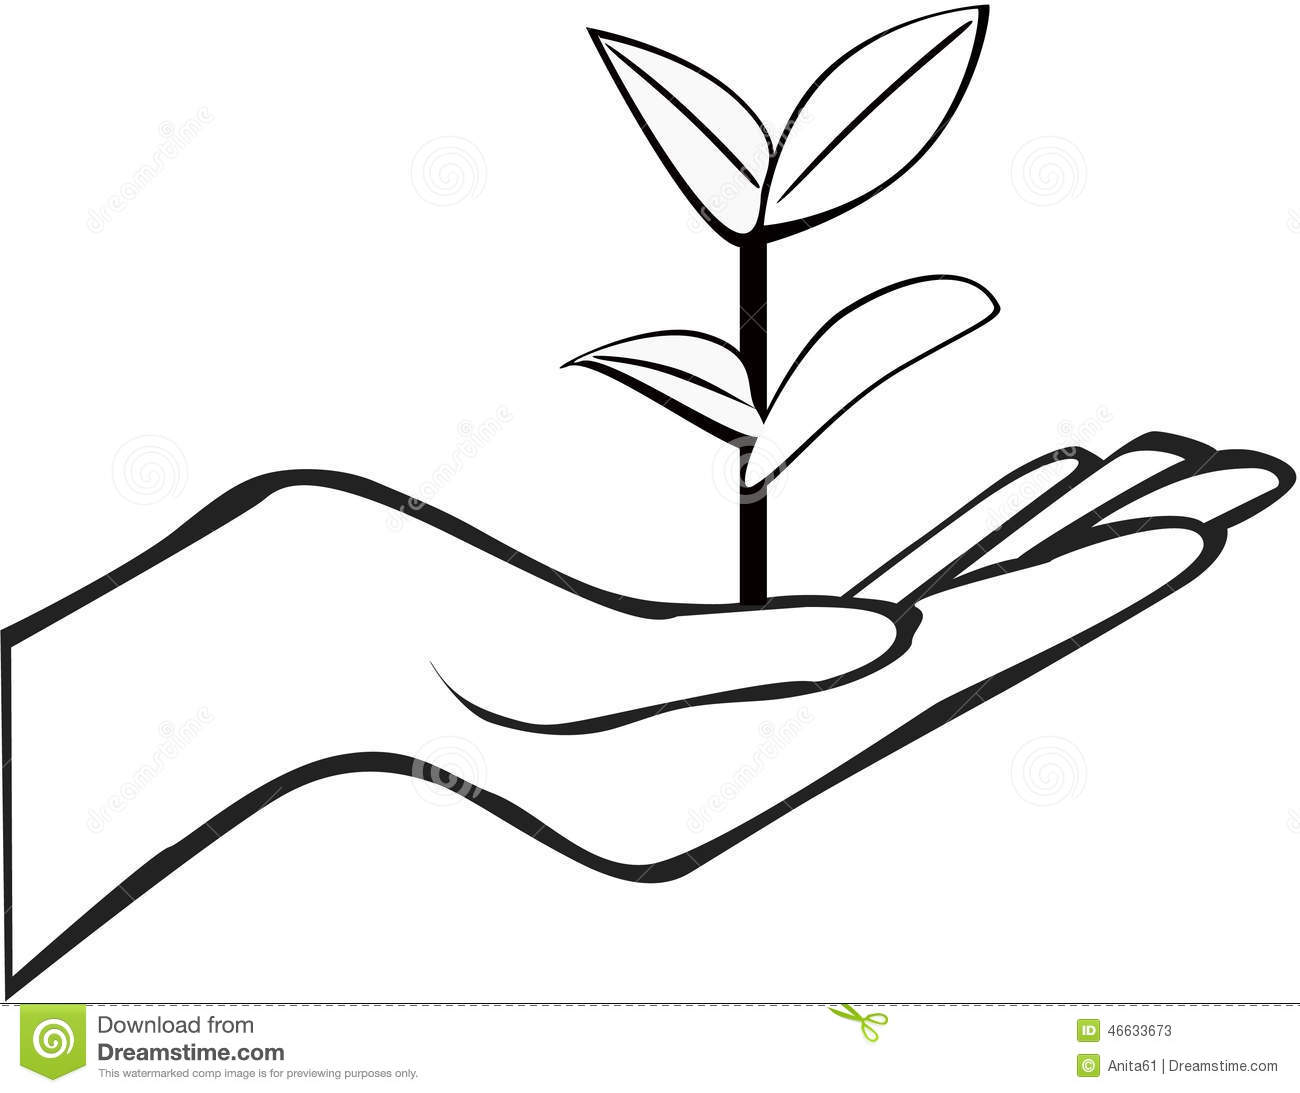 Grapevines Vineyards together with Sansevieria besides Stock Illustration Hand Holding Plant Small Image46633673 further Planta Joven also 37077. on plant sprout